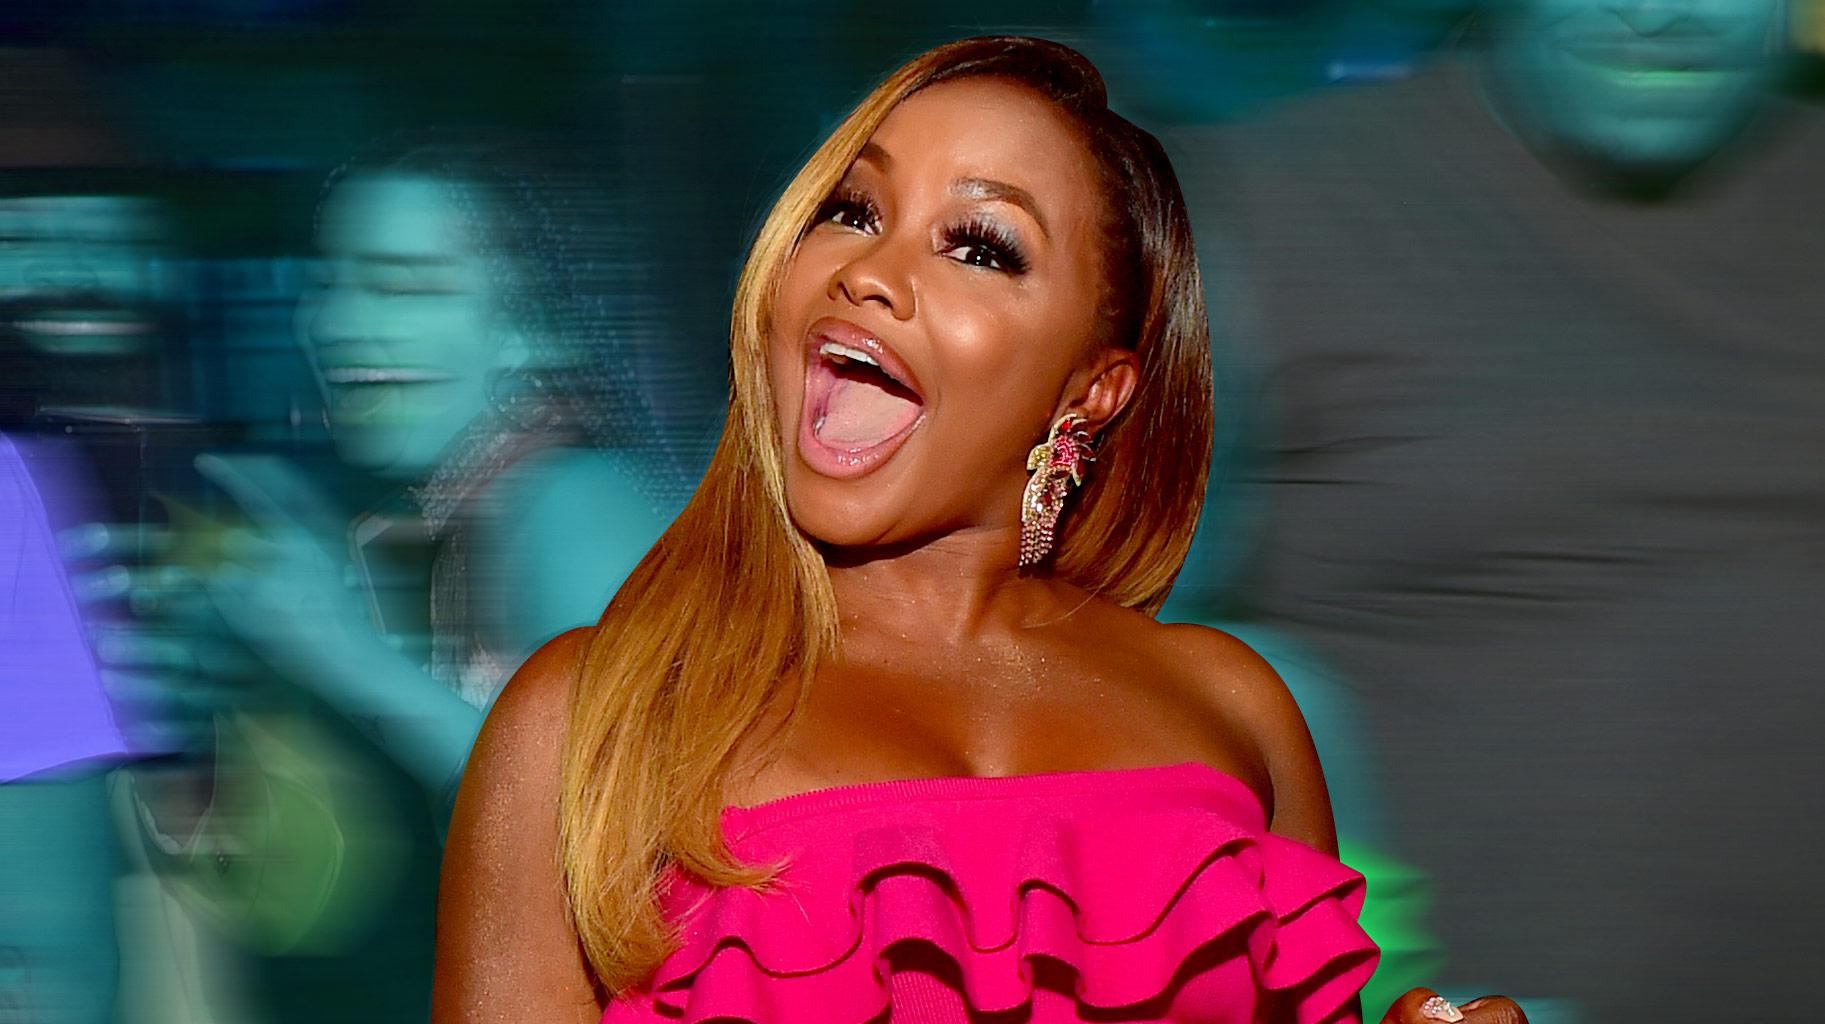 Phaedra Parks Shows Off Christmas Gifts In This Video And Nicki Minaj Is Here For It